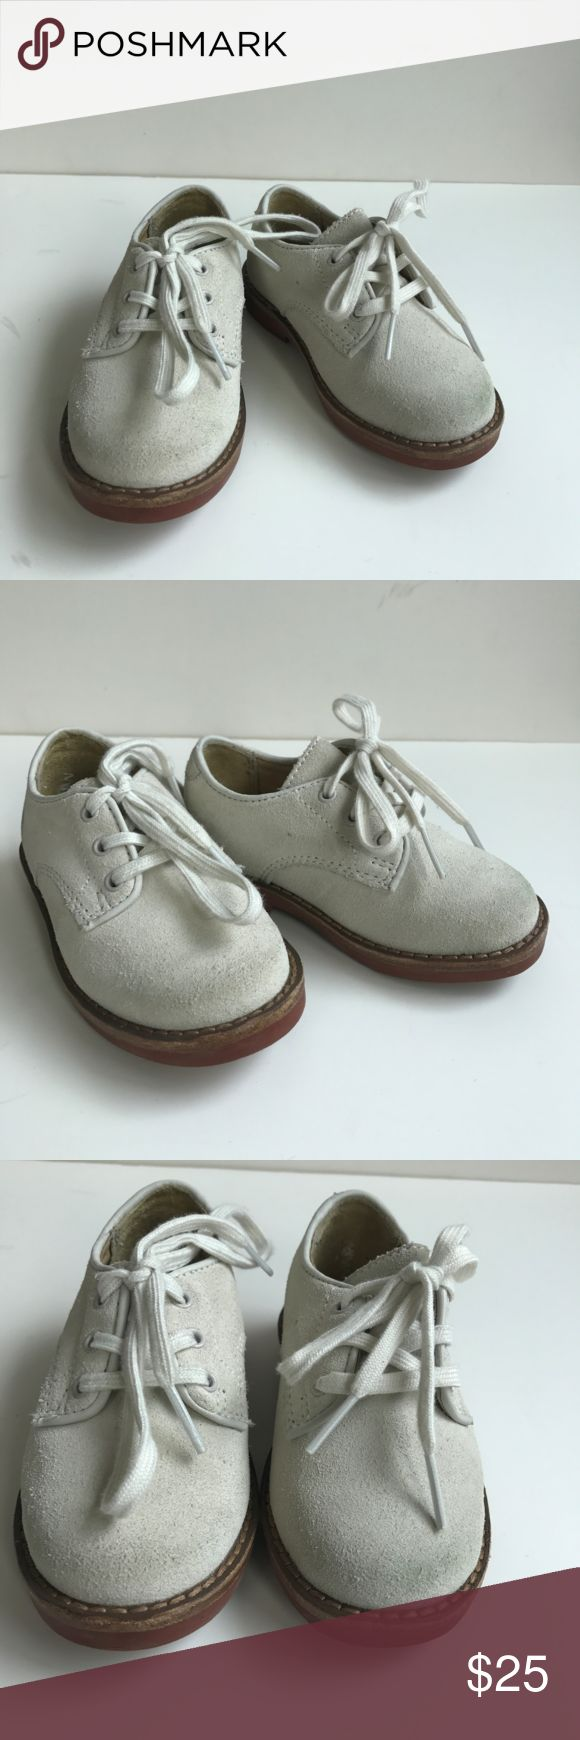 best 25 polo shoes ideas on mens polo shoes